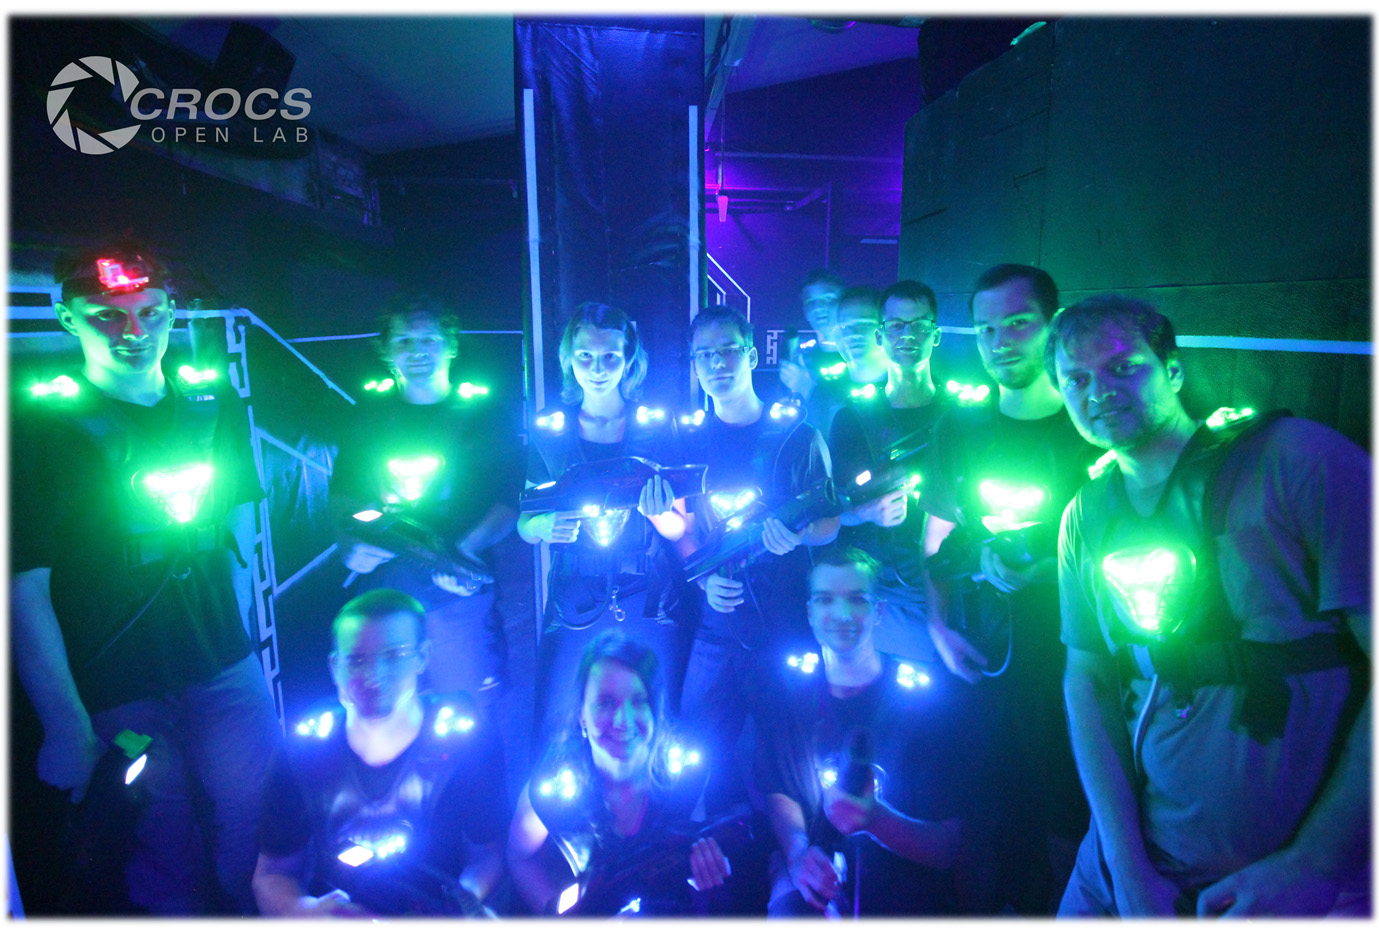 public:crocs:lasergame_session_20141107.jpg